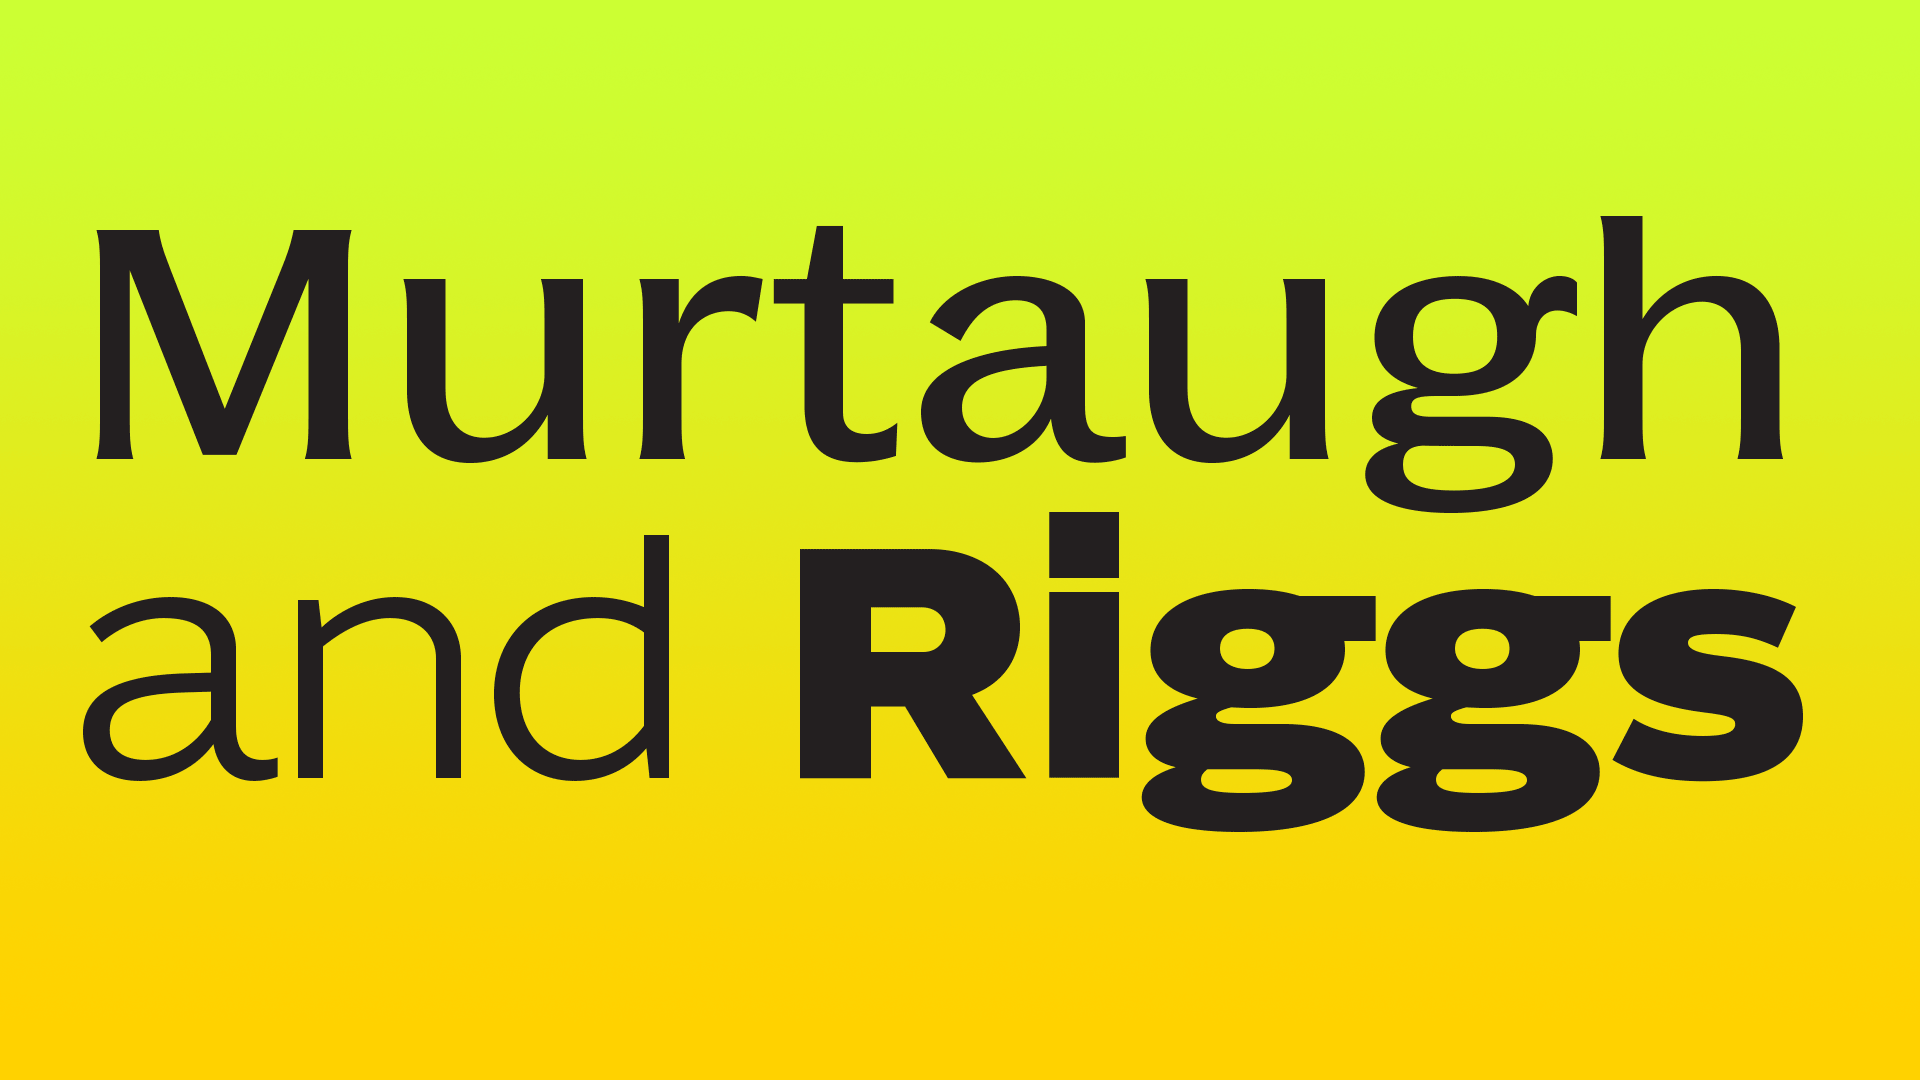 Murtaugh and Riggs by Typotheque